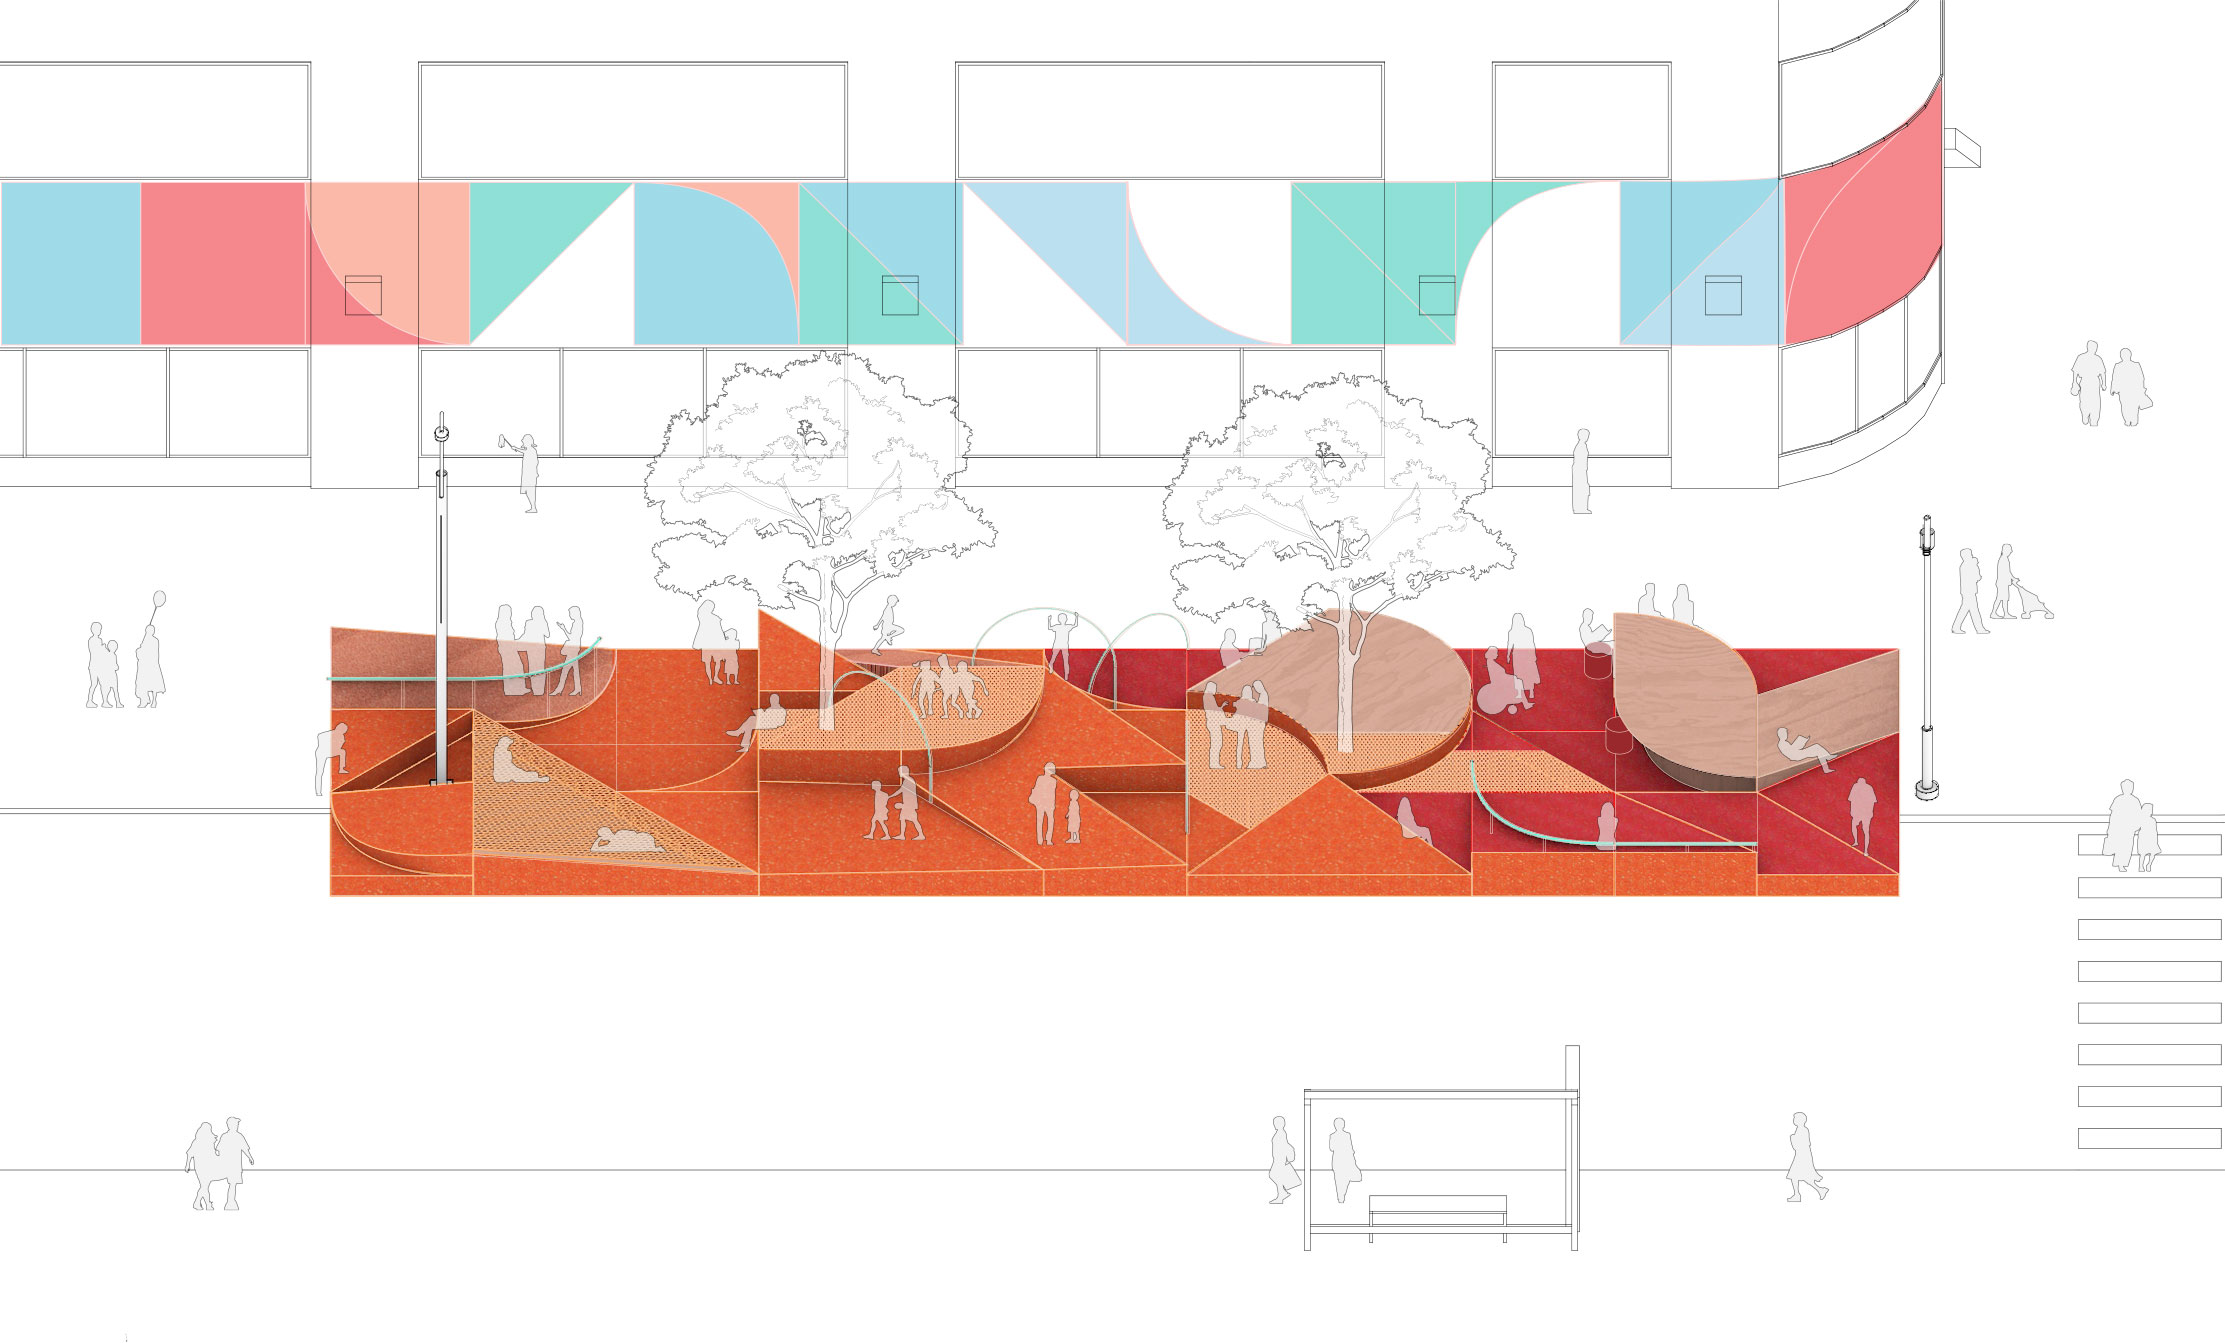 diagram of rubber switchback plaza in orange with trees throughout, restorative ground